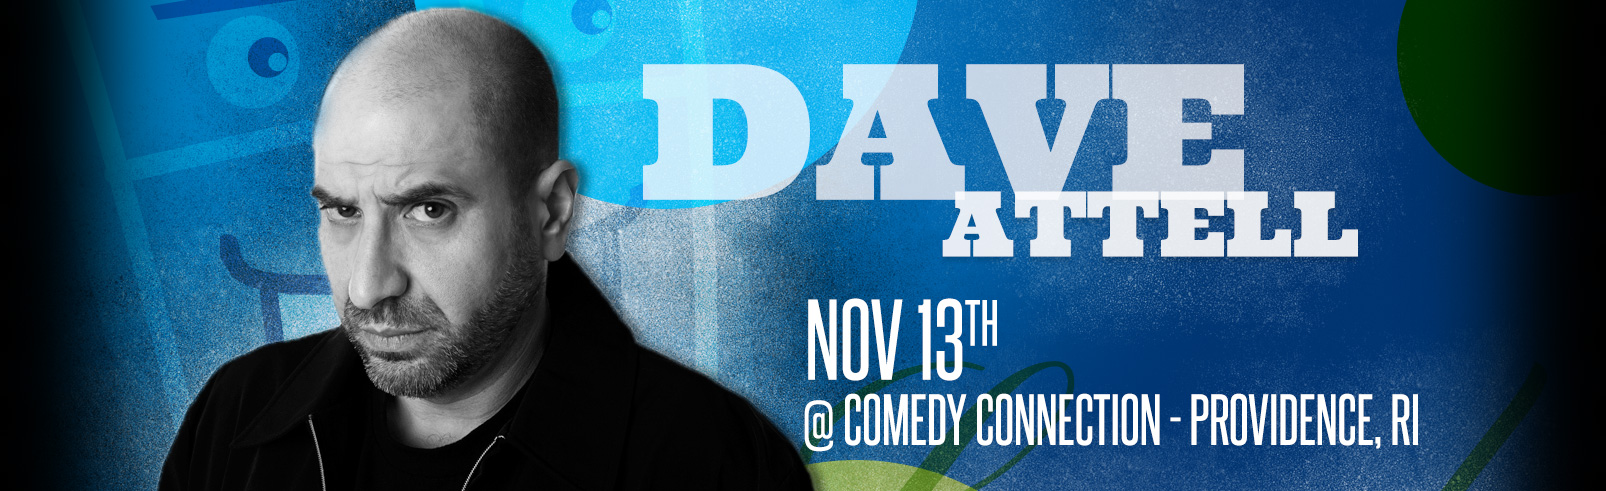 Dave Attell @ Comedy Connection - Providence